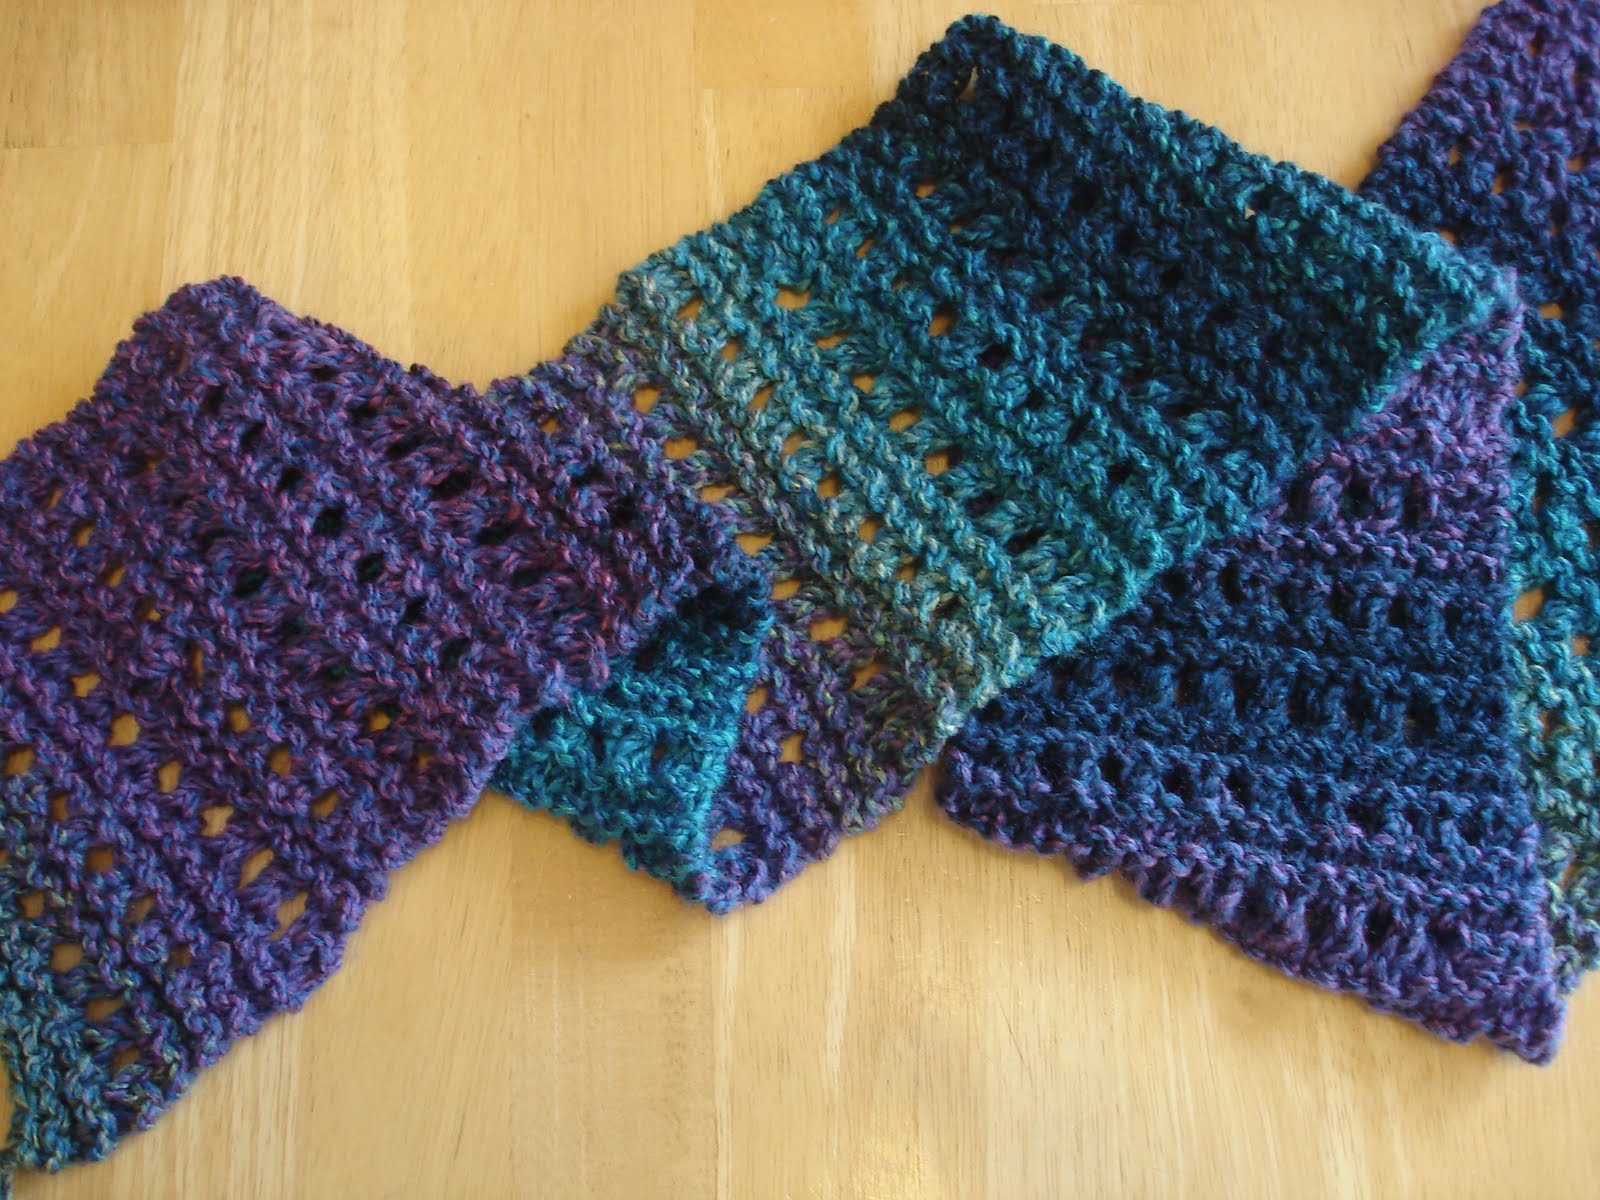 Free Patterns Knitting : Fiber Flux: Free Knitting Patterns